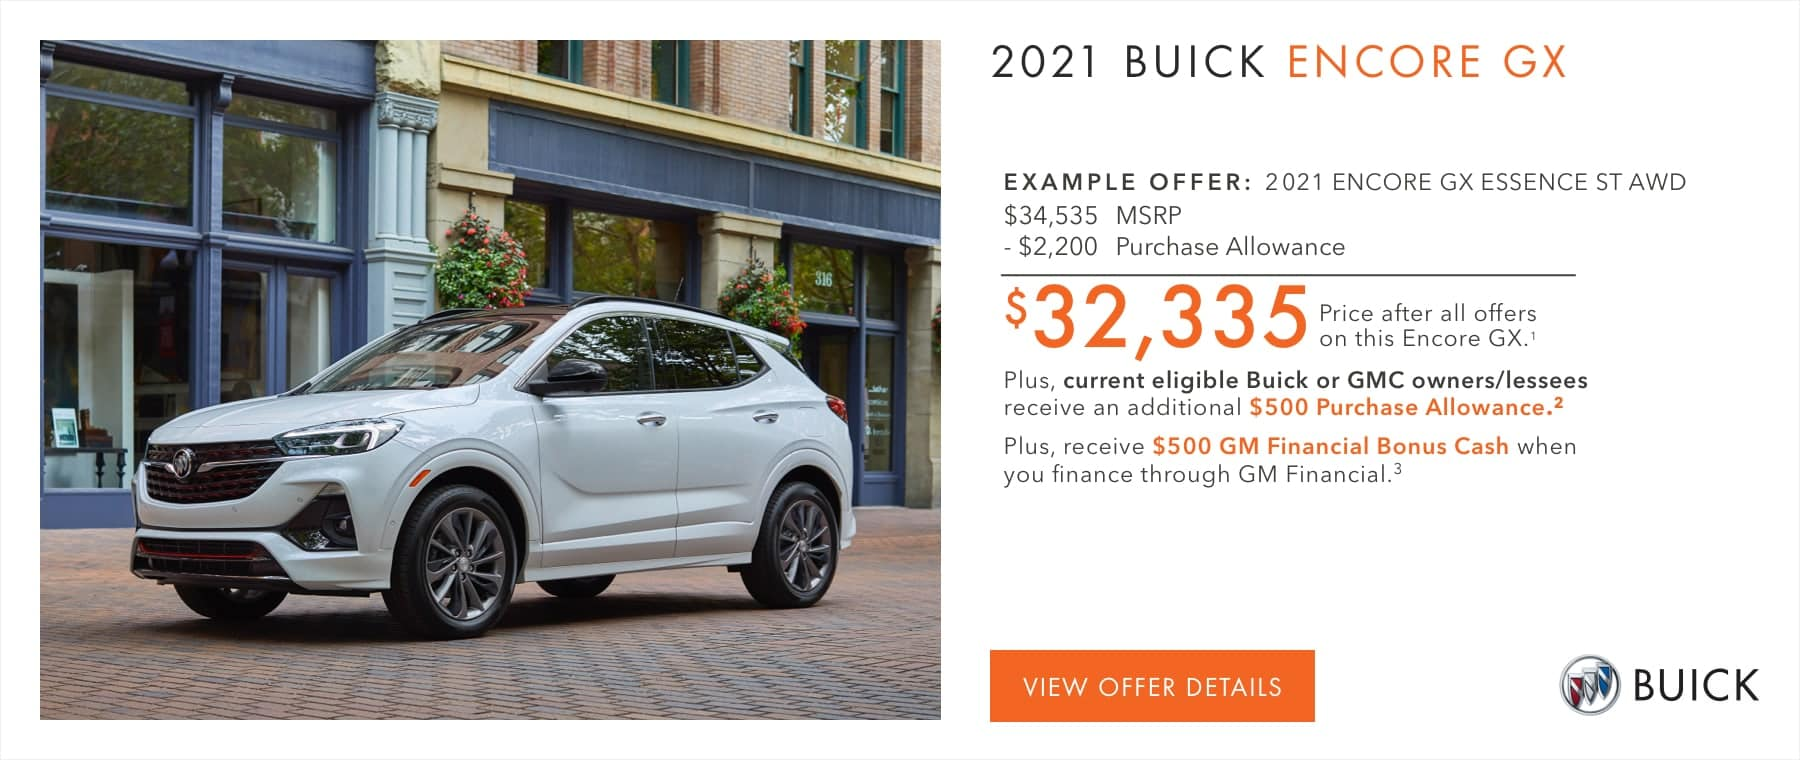 EXAMPLE OFFER: 2021 ENCORE GX ESSENCE ST AWD $34,535 MSRP -$2,200 Purchase Allowance $32,335 Price after all offers on this Encore GX.2 Plus, current eligible Buick or GMC owners/lessees receive an additional $500 Purchase Allowance.2 Plus, receive $500 GM Financial Bonus Cash when you finance through GM Financial.3